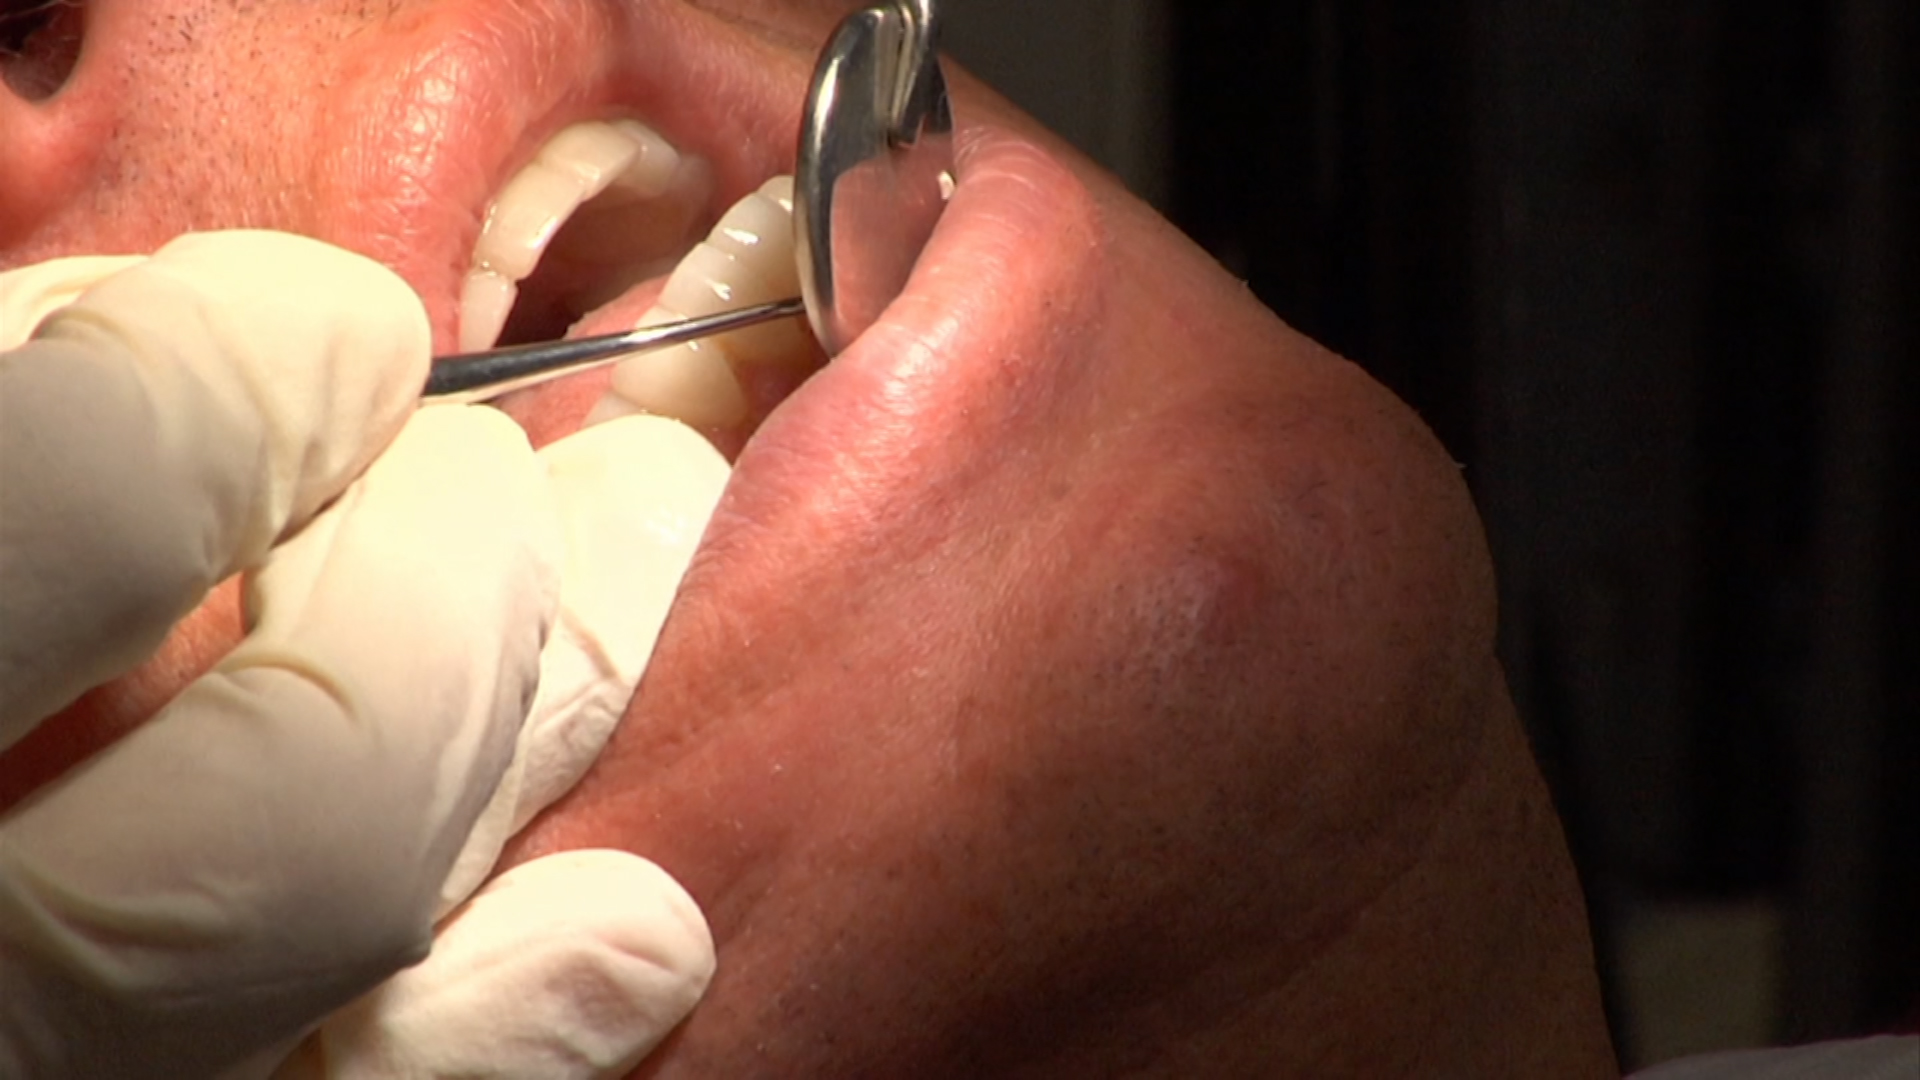 The Role of Dentists in the Growing Opioid Addiction Crisis